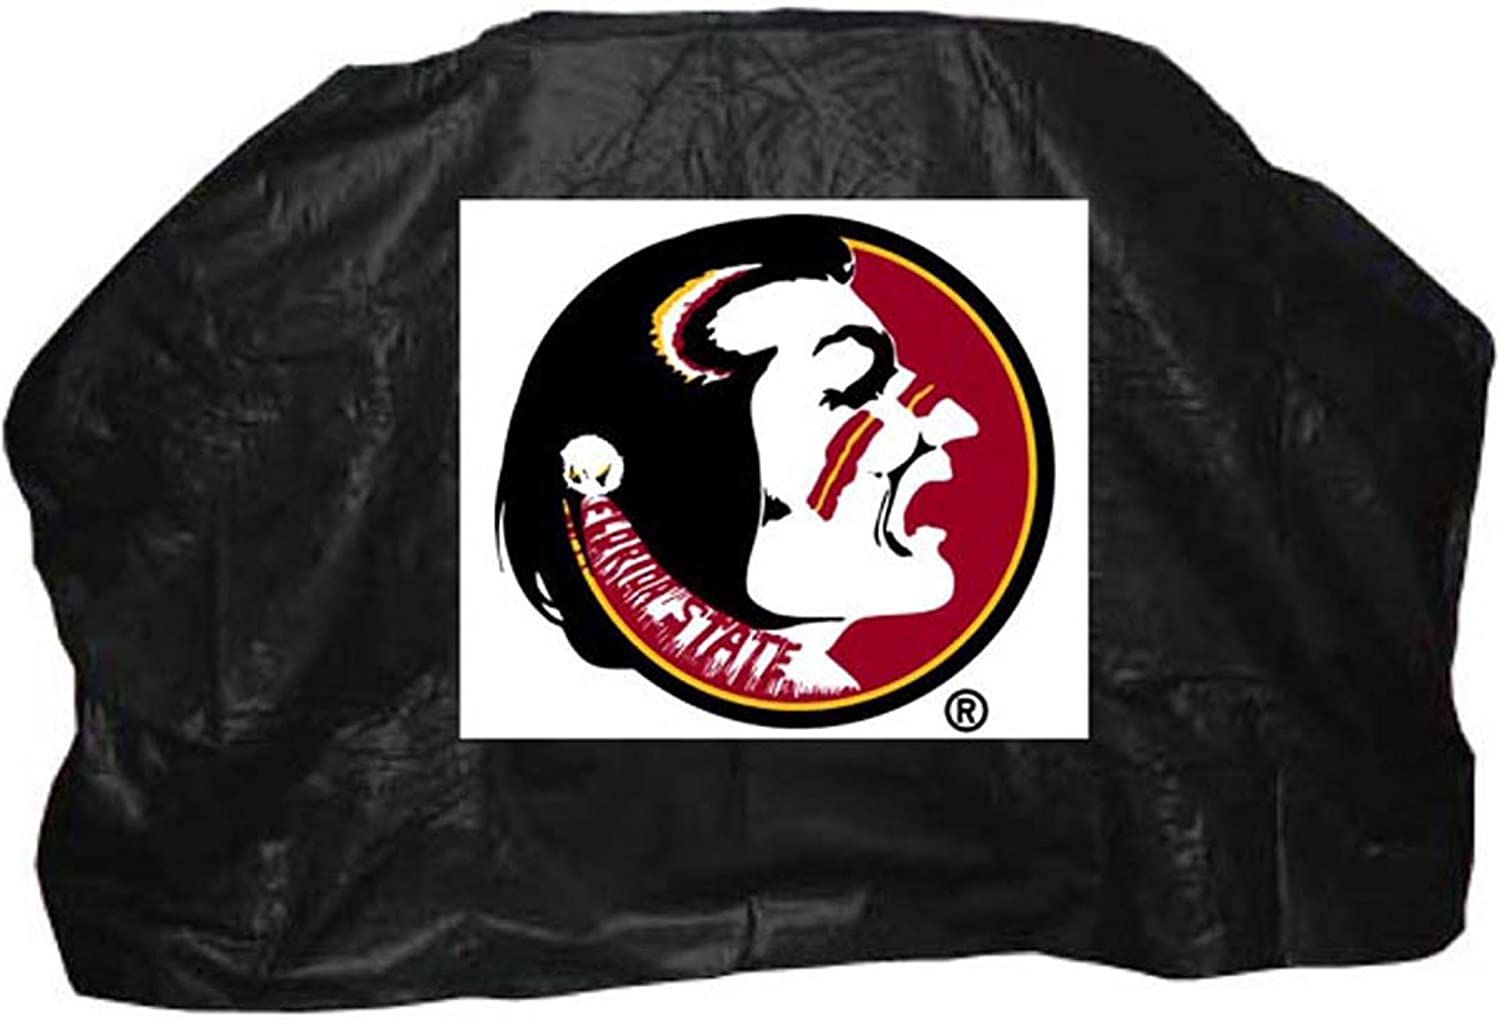 NCAA Florida State Seminoles 59-Inch Grill Cover